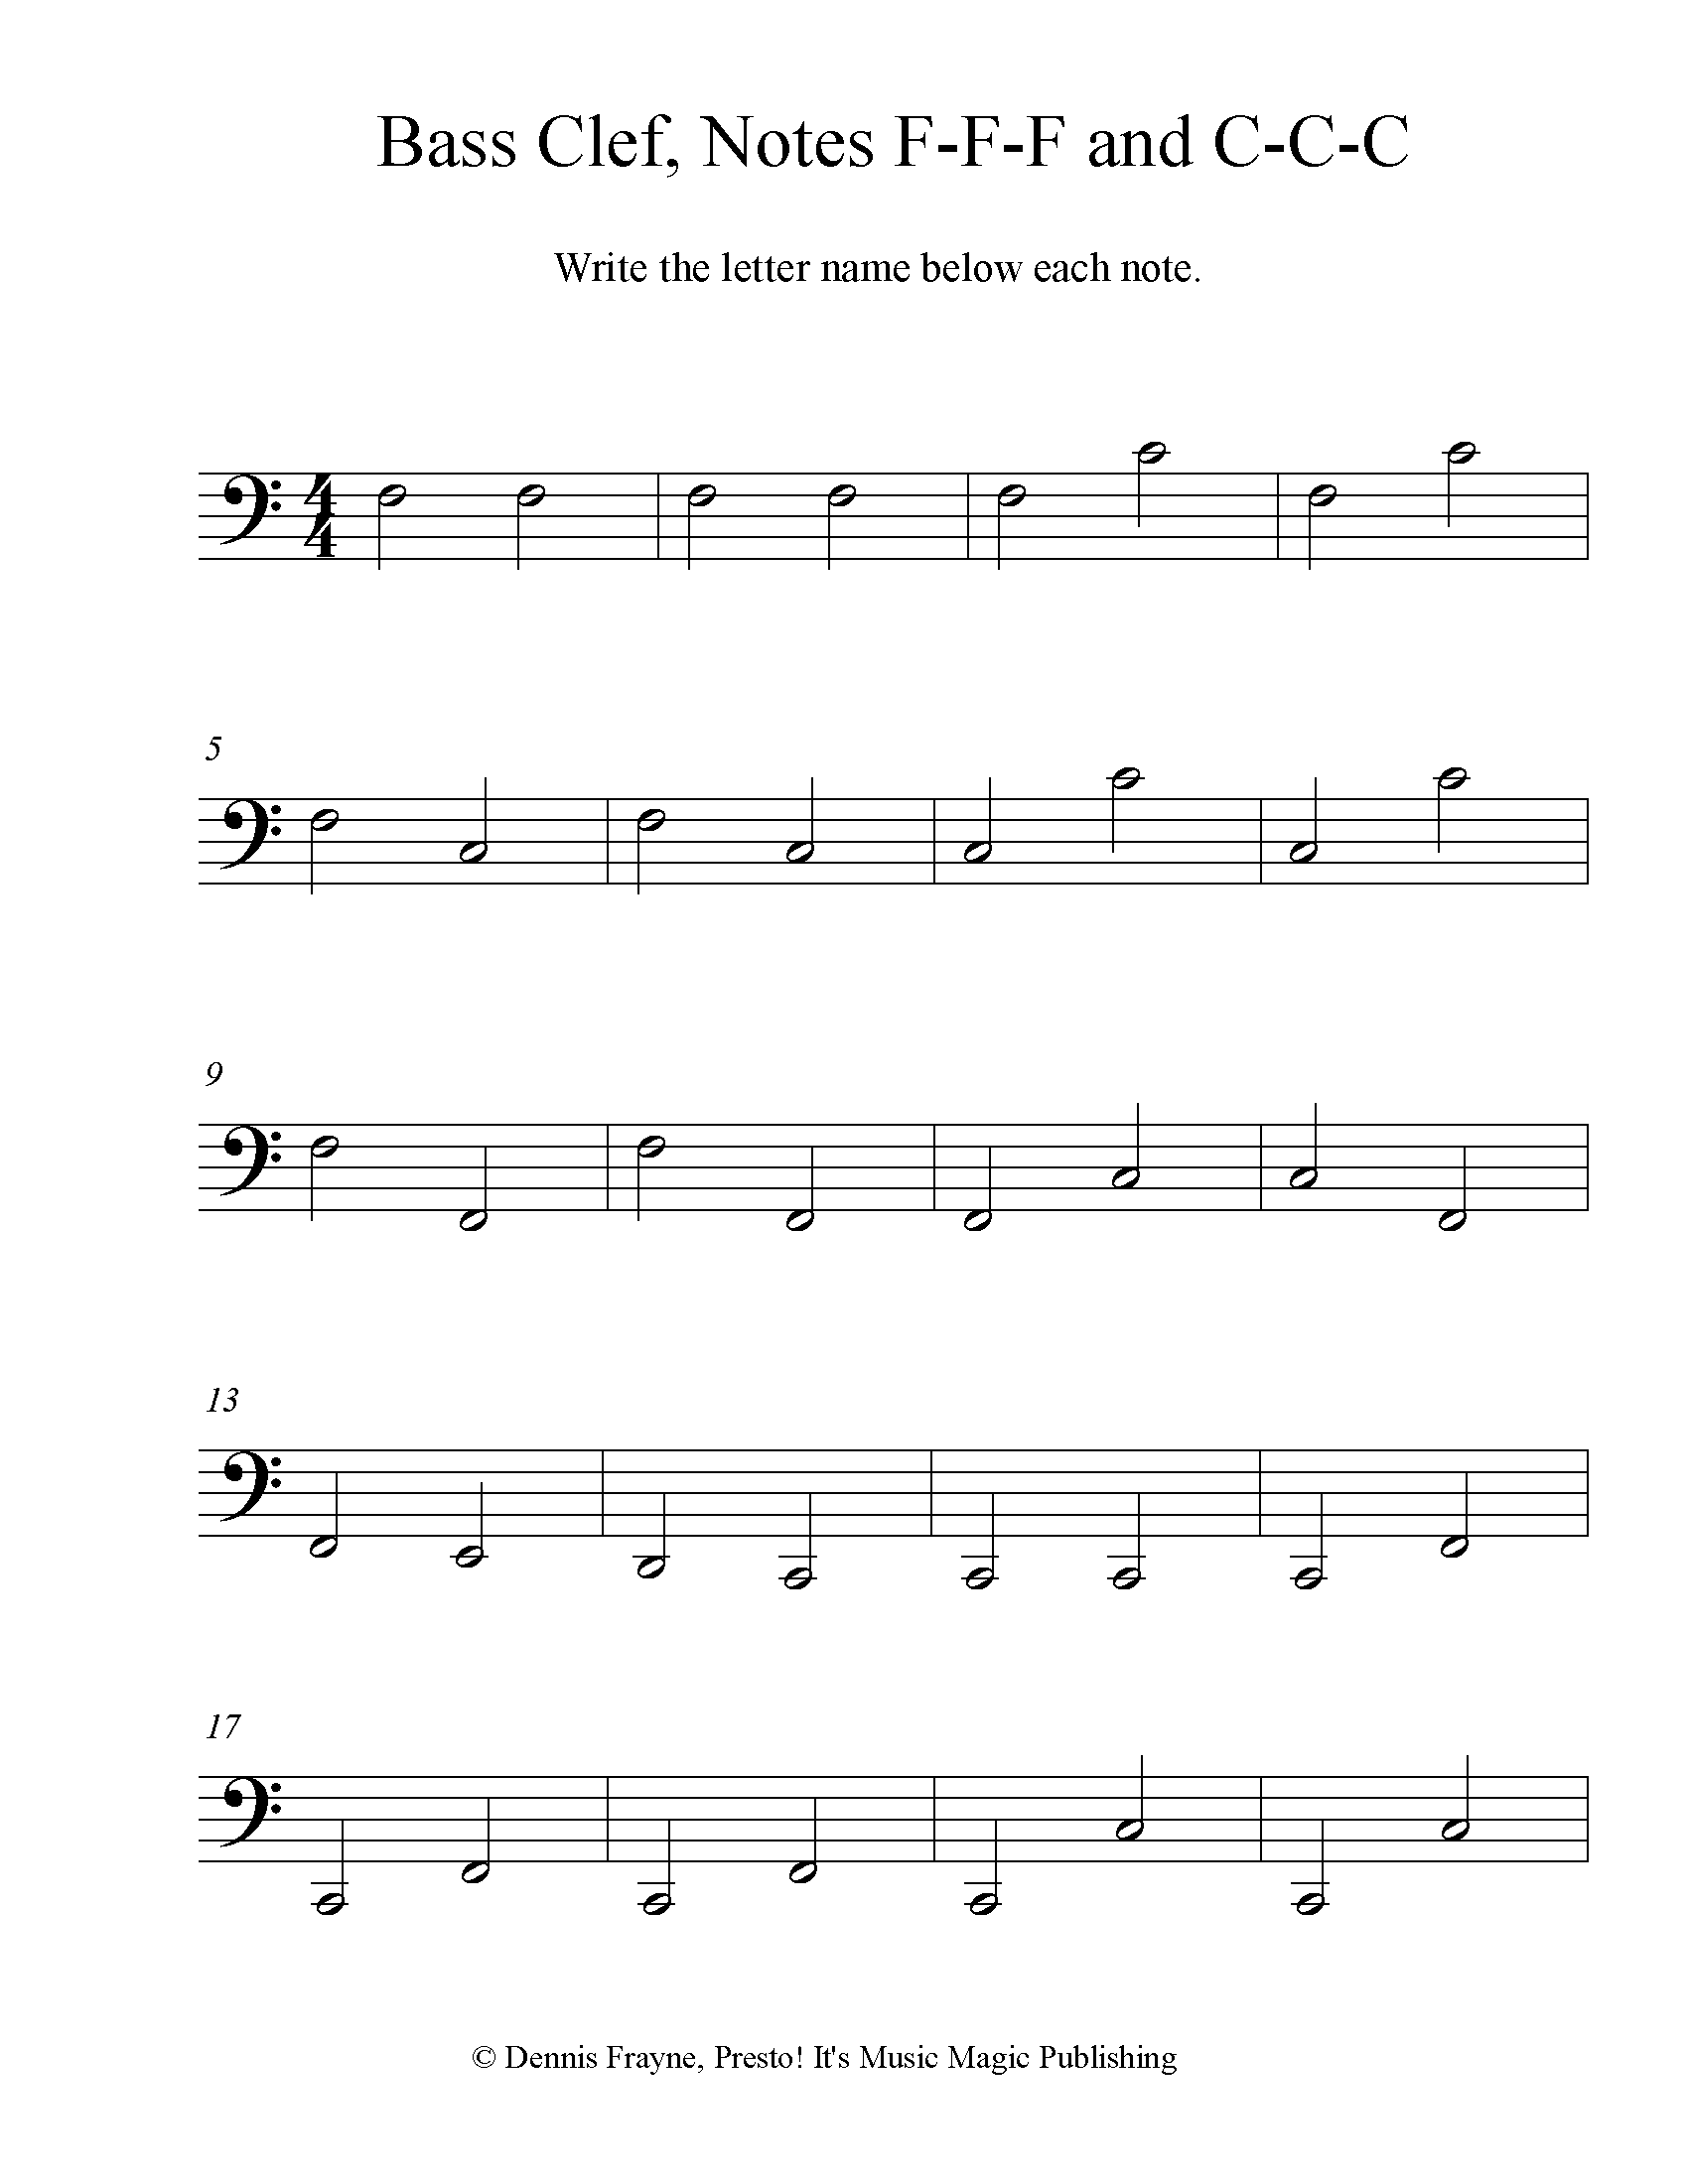 Bass Clef Note Identification Practice Worksheet, Level 4 4 pages